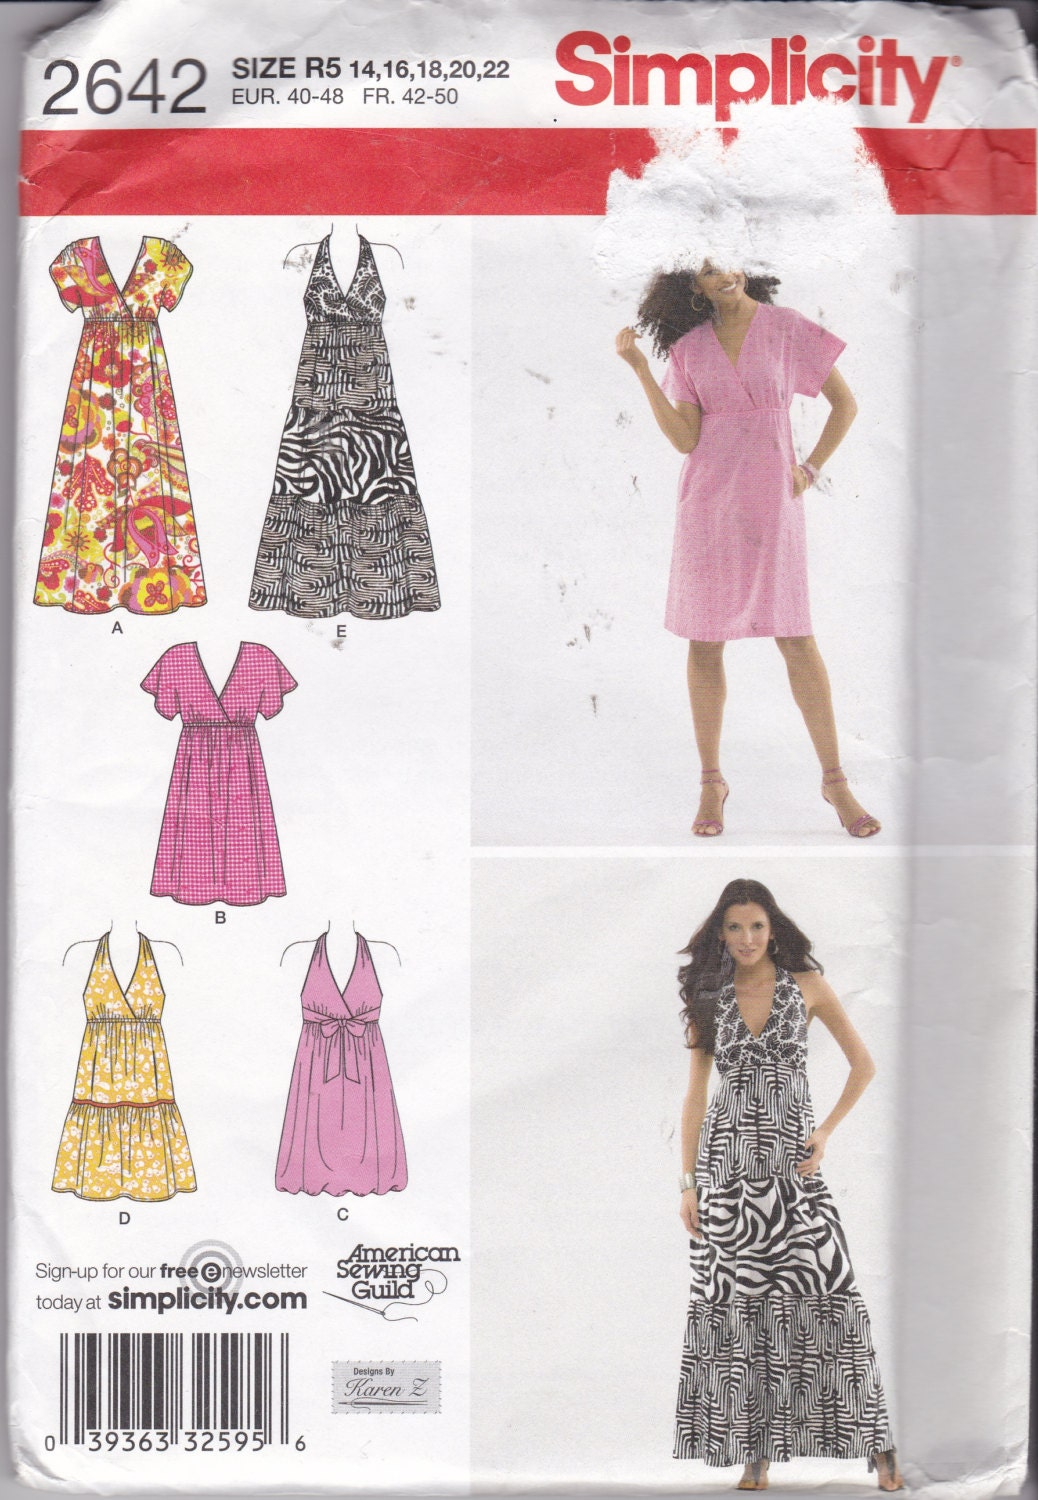 26382418c49e7 Simplicity 2642, NEW & UNCUT, Design's by Karen Z, dress pattern in sizes  14-22. Halter top dress or Kimono influence styling, summer dress from ...